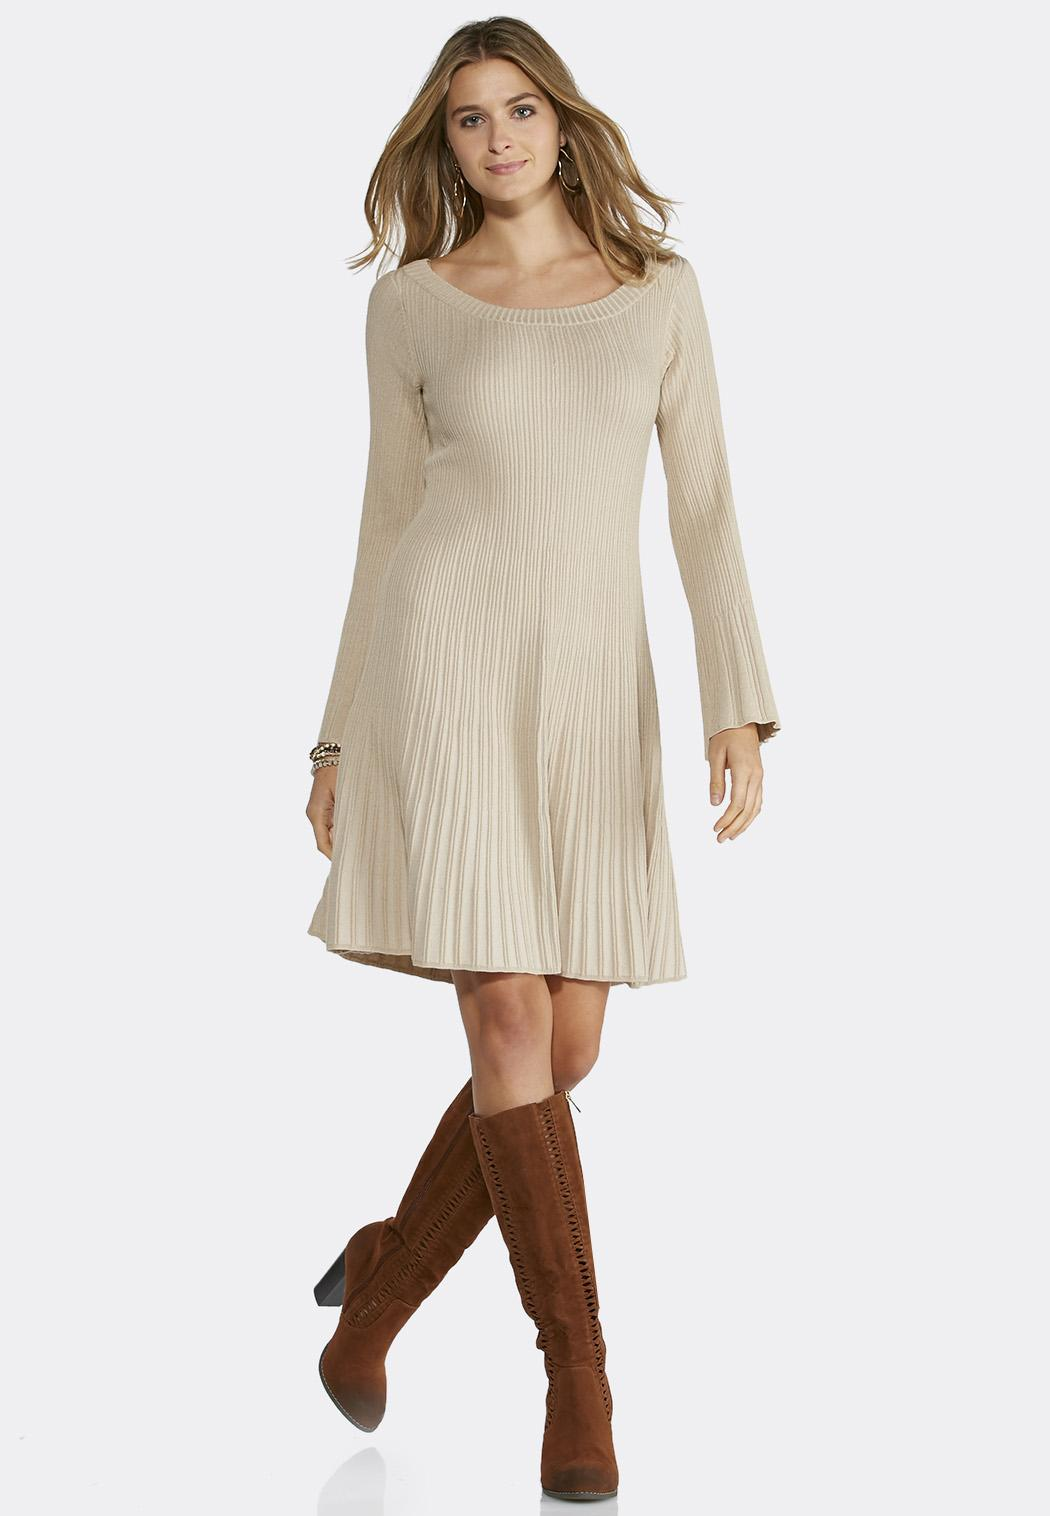 Fit and Flare Ribbed Sweater Dress Junior/Misses Cato Fashions